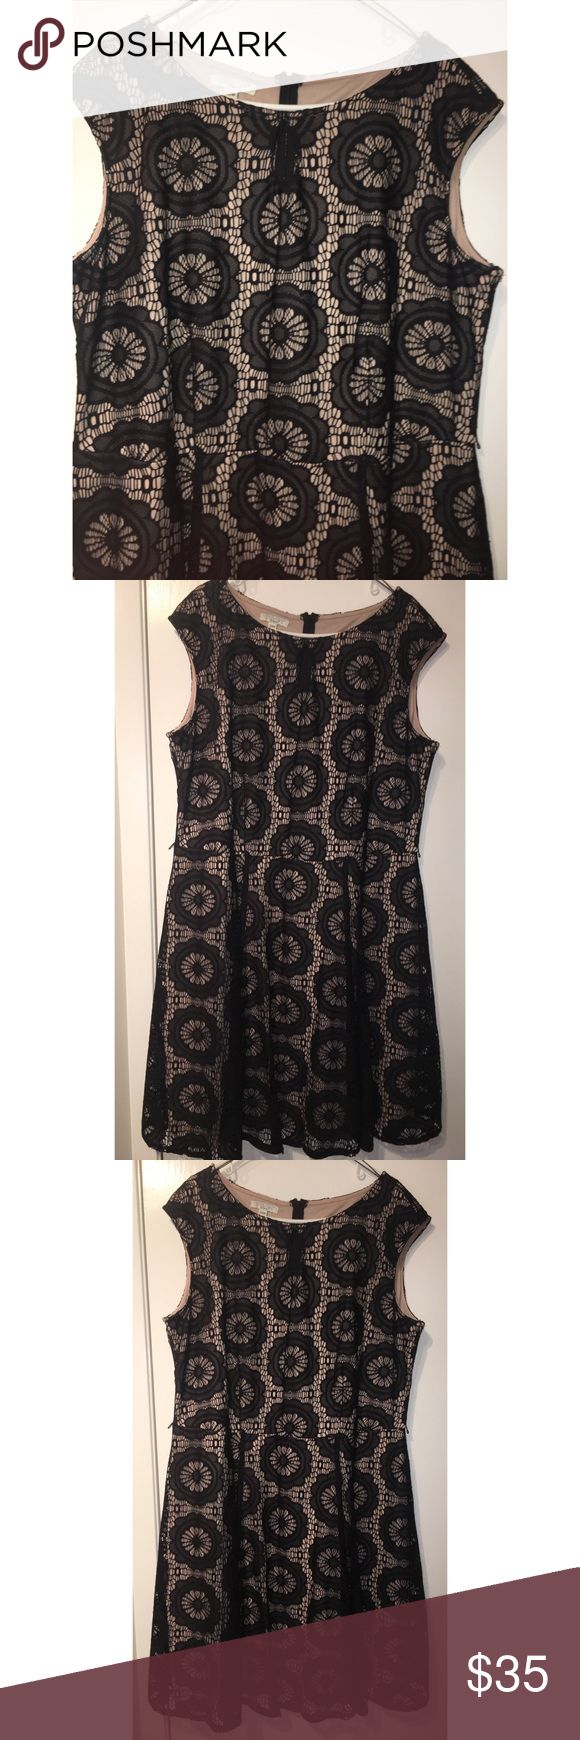 Black & Tan Lace Dress Black and tan lace fit and flare dress. New without tags - never used. Size 20W. The material is 100% polyester. Dresses Midi